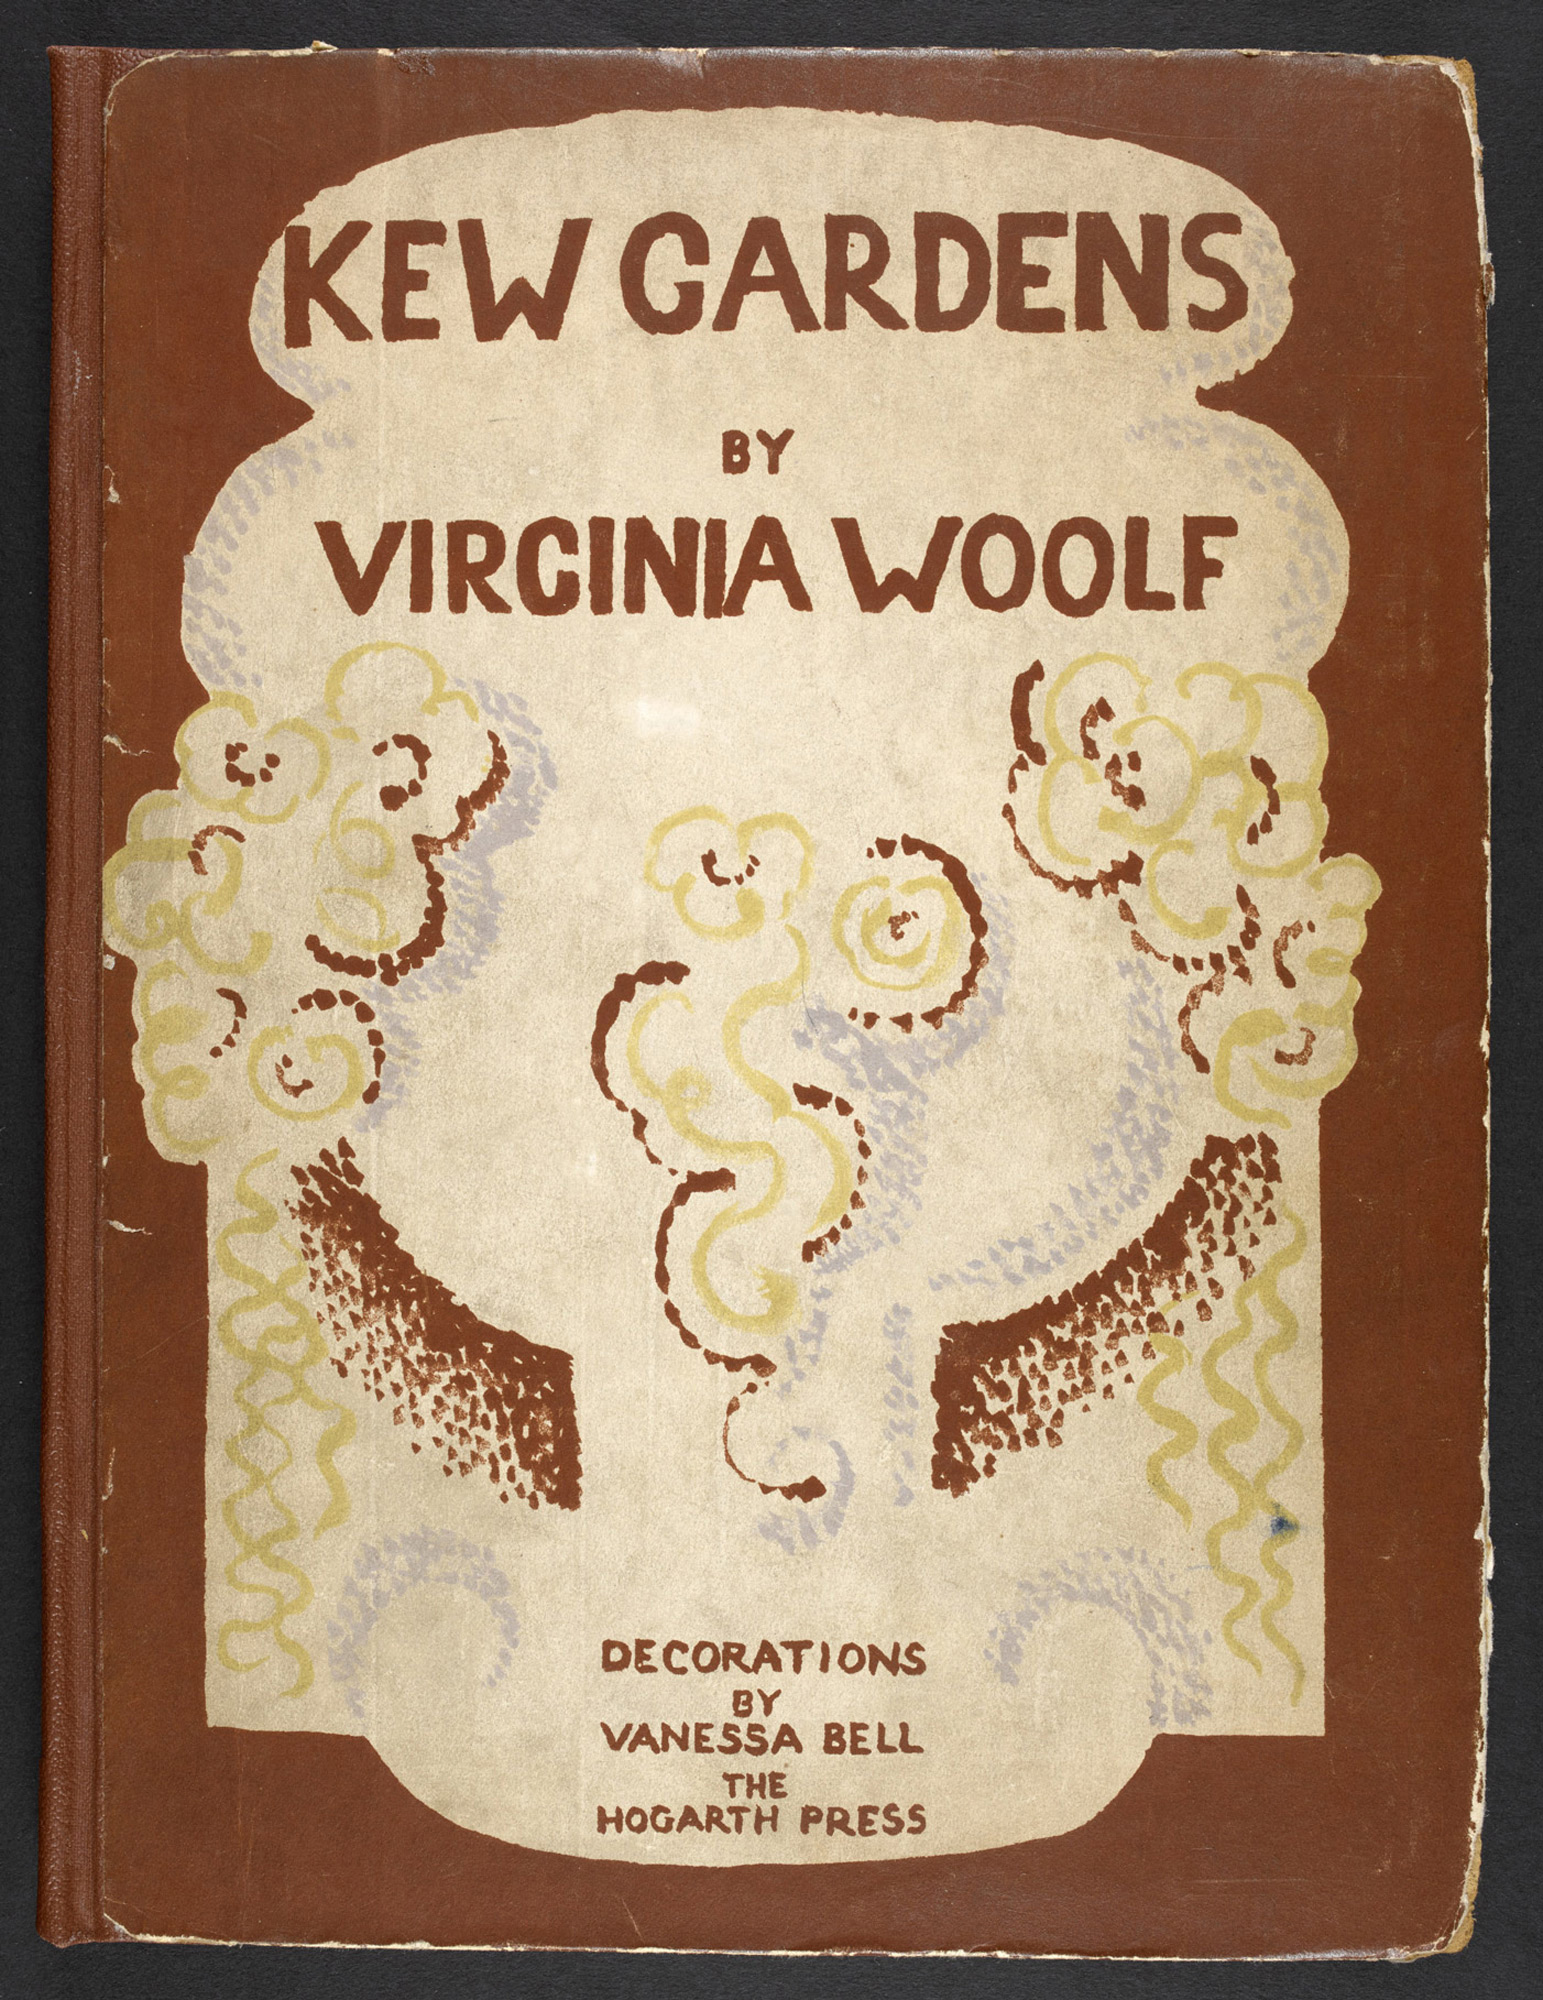 Kew Gardens by Virginia Woolf, 1927